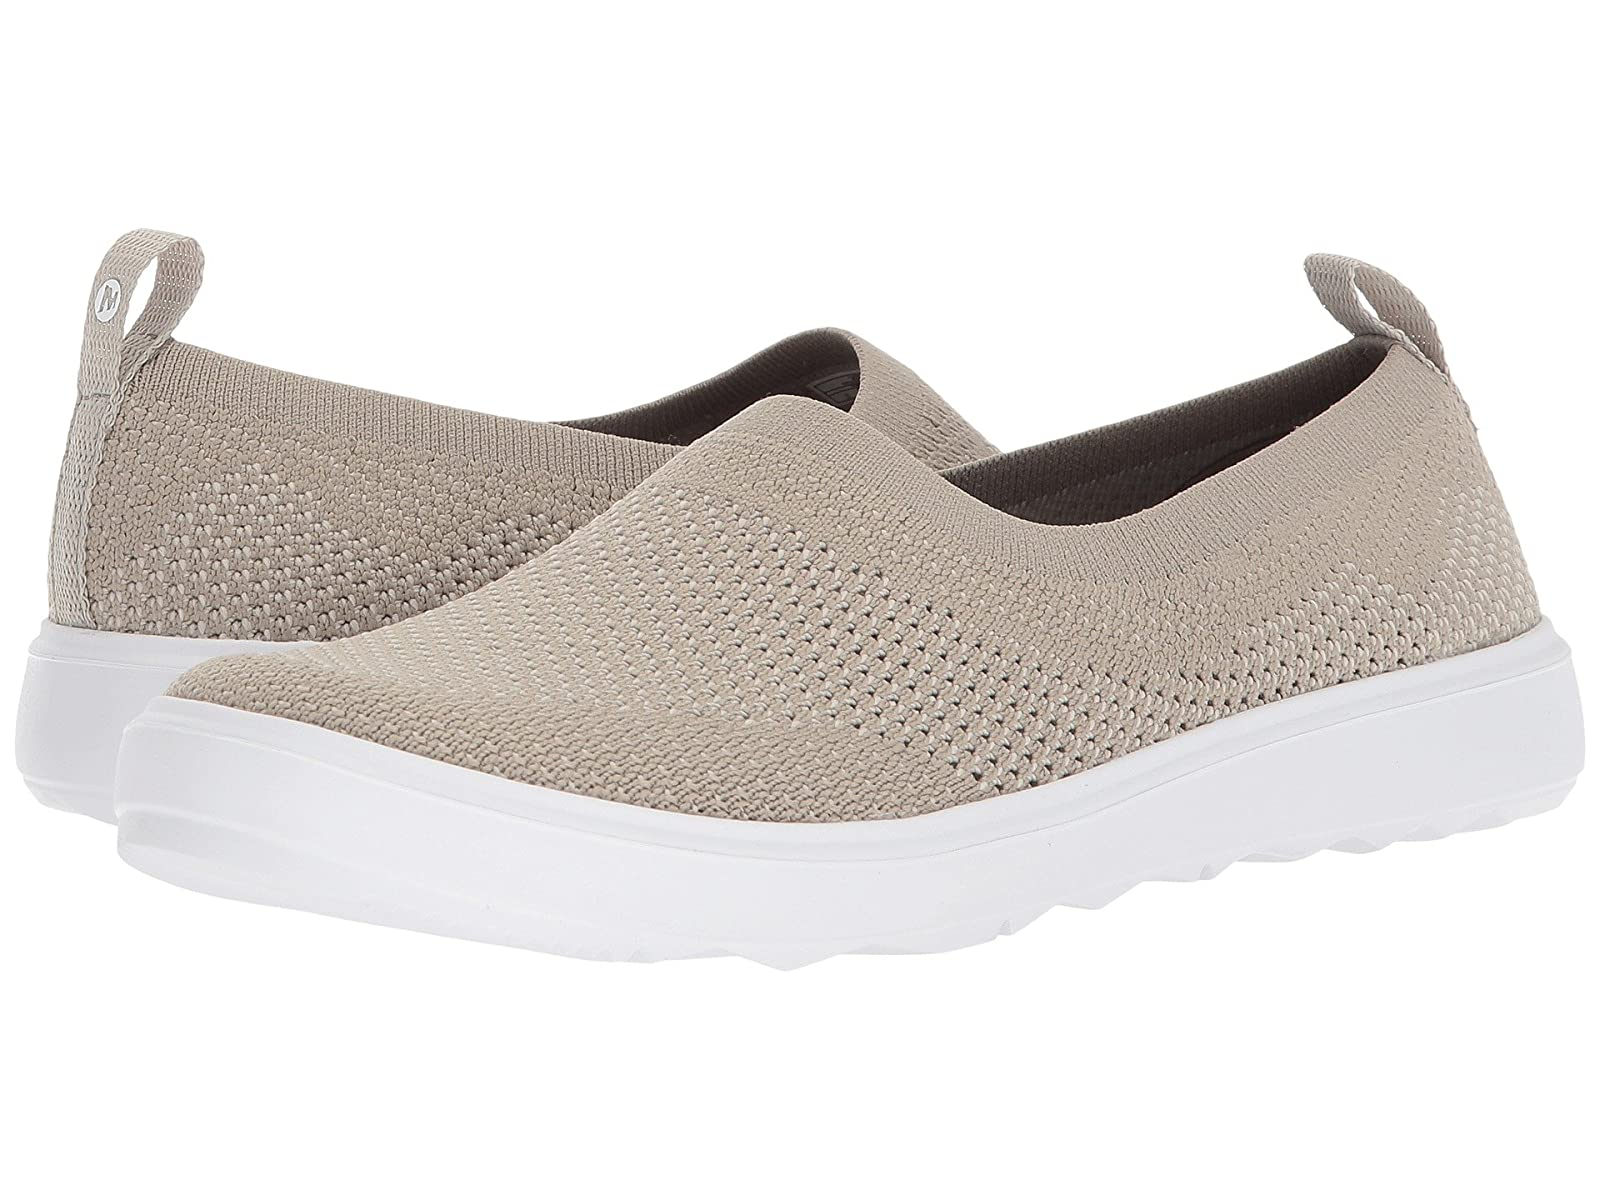 Merrell Around Town City Moc KnitCheap and distinctive eye-catching shoes